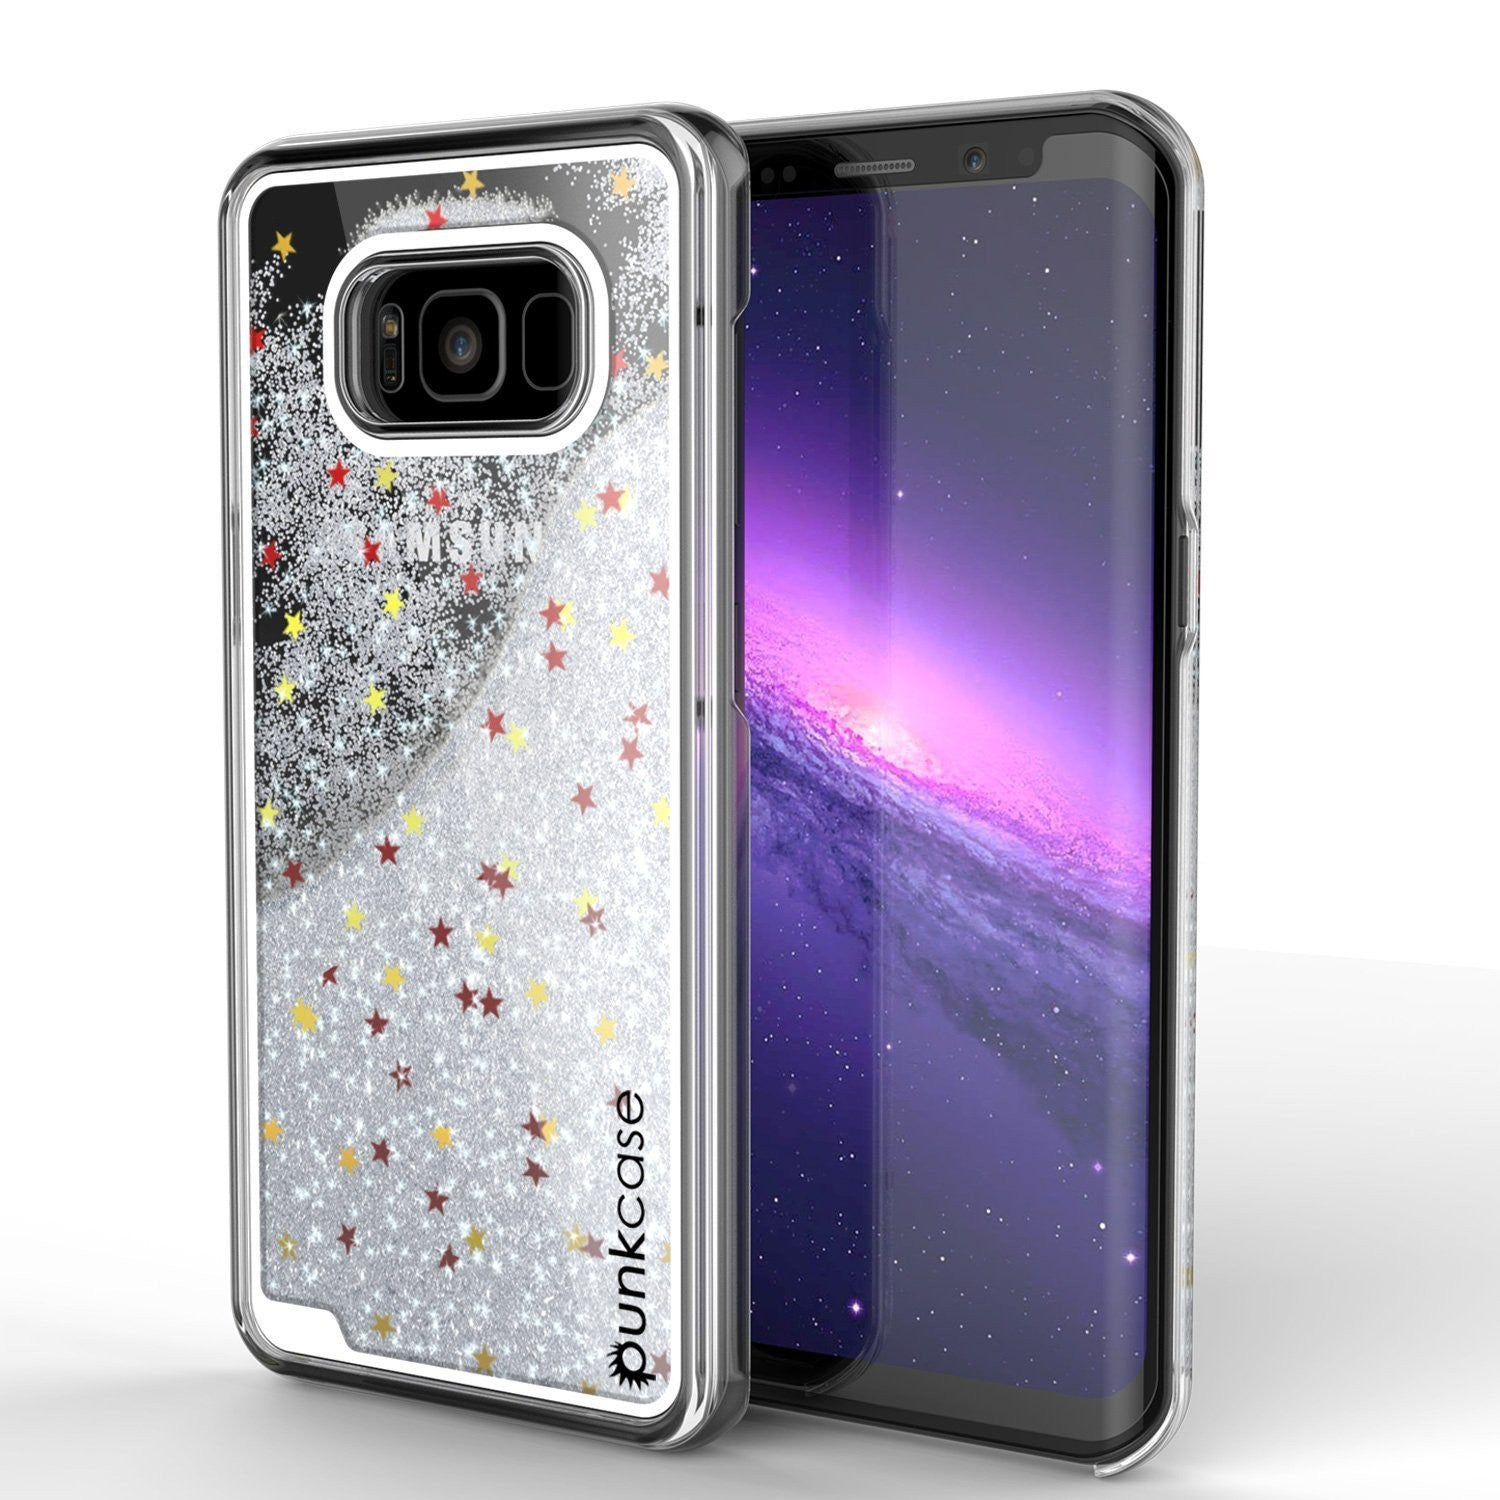 Galaxy S8 Case, Punkcase [Liquid Series] Protective Dual Layer Floating Glitter Cover + PunkShield Screen Protector [Silver]